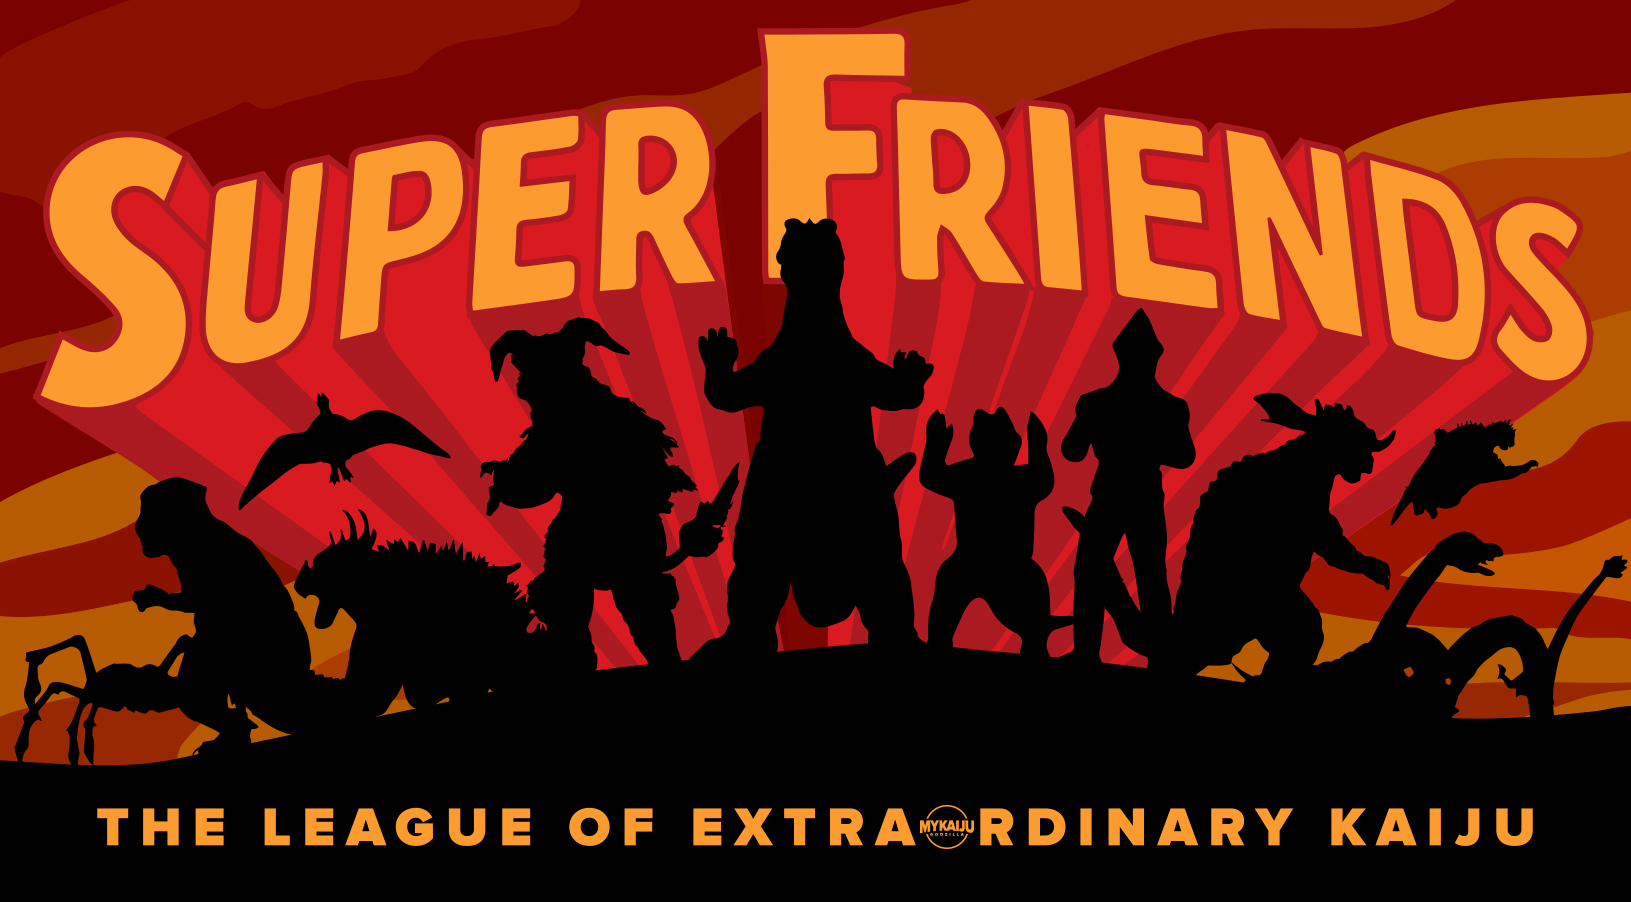 Godzilla and Company are the Super Friends A League of Extraordinary Kaiju